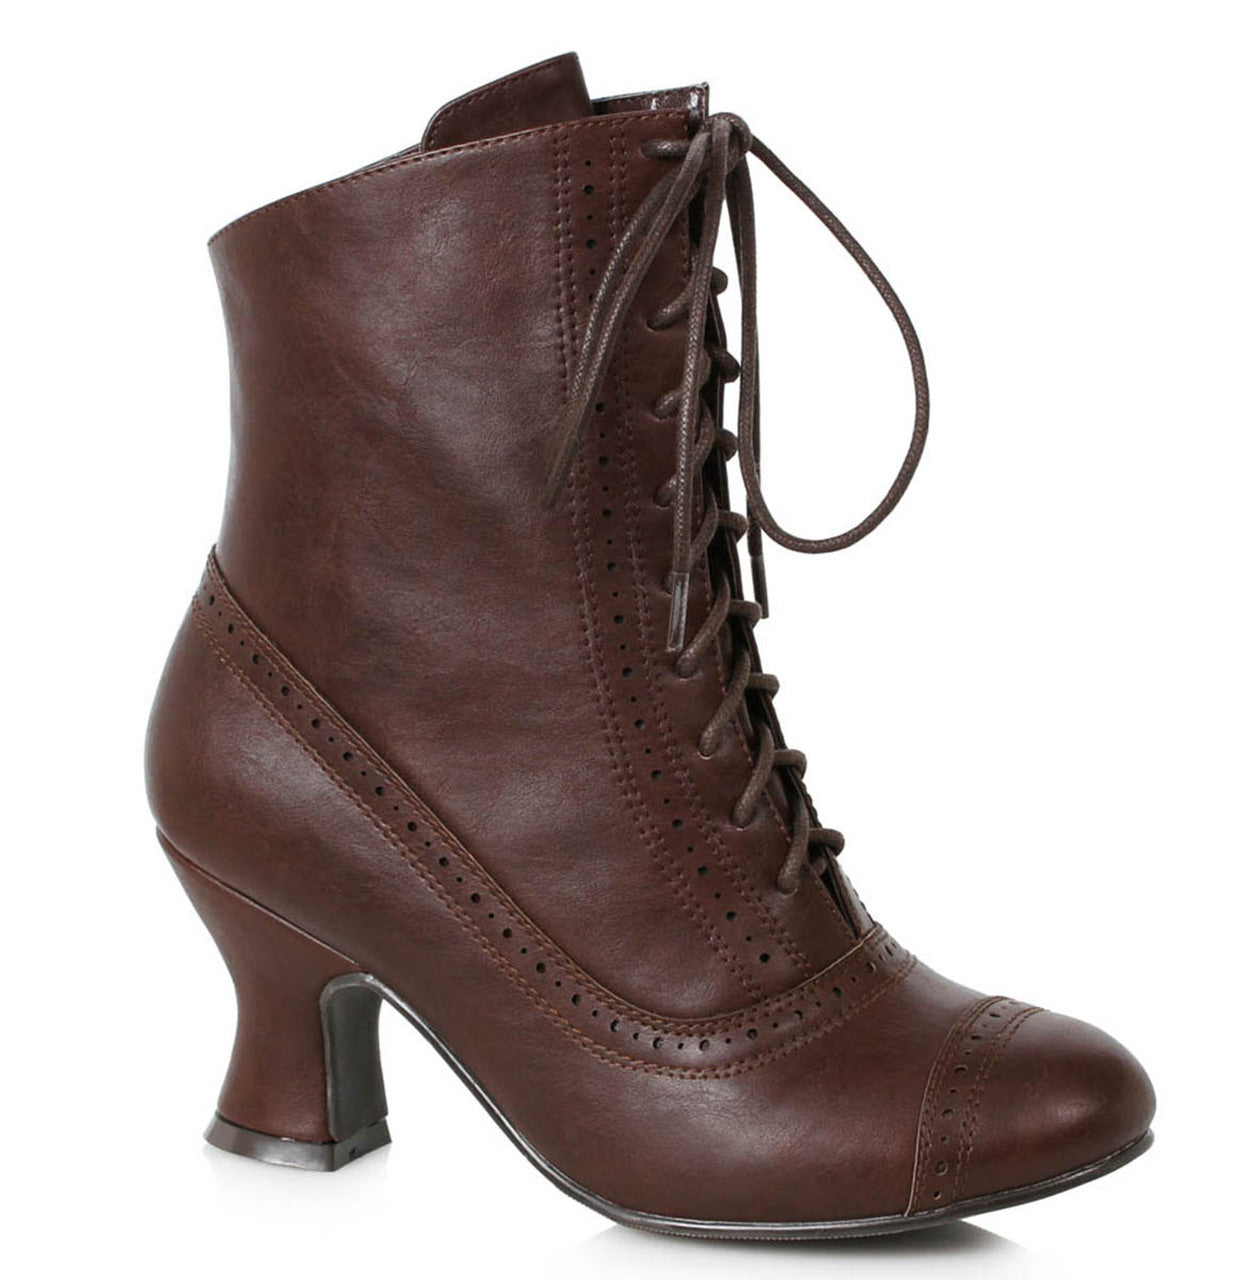 Chestnut Ankle Boot